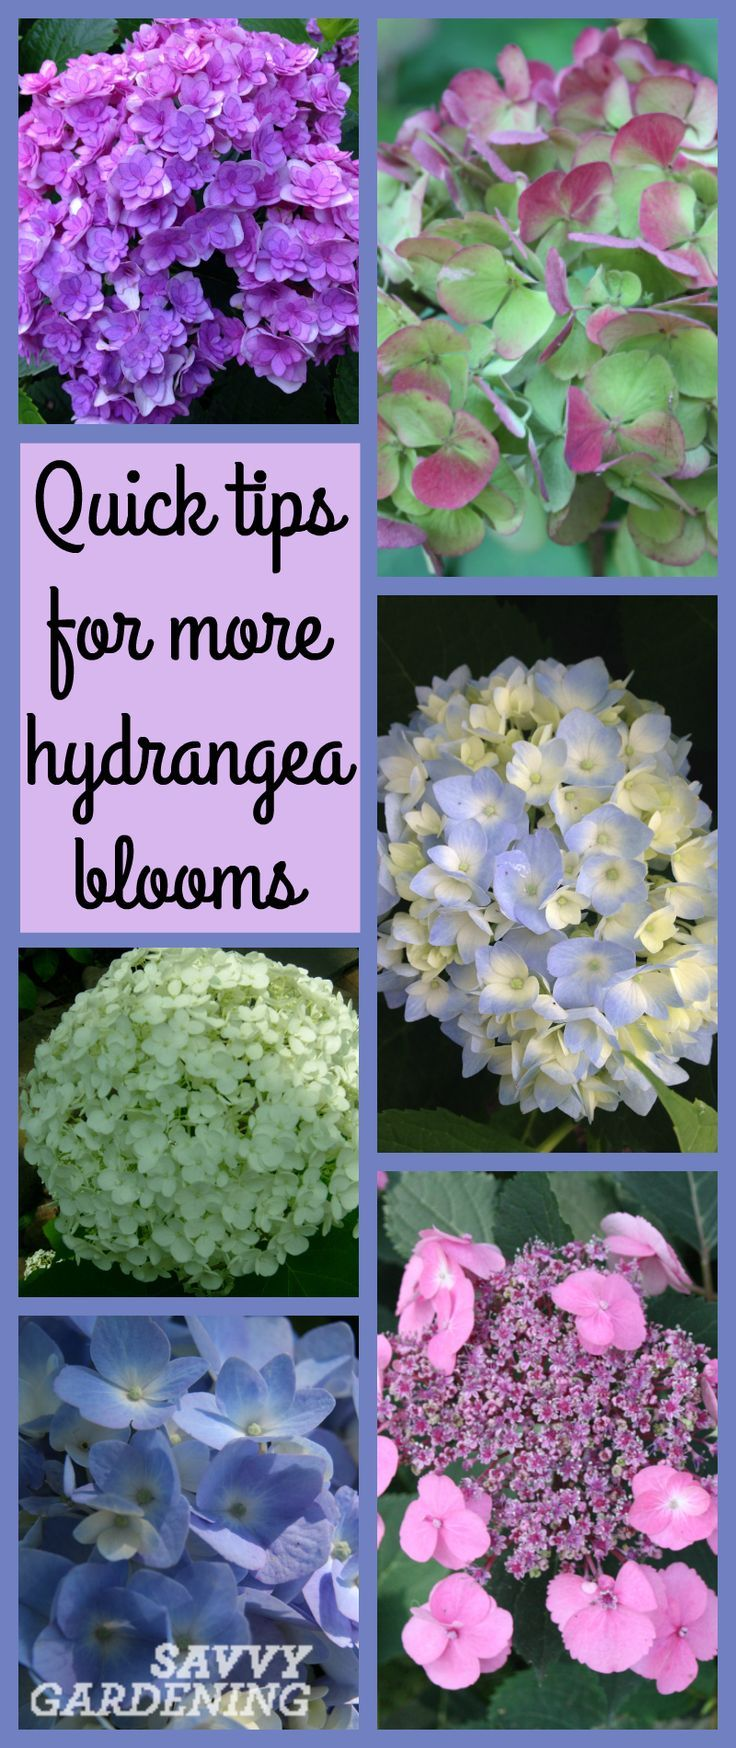 Quick Tips For More Hydrangea Blooms | Savvy Gardening